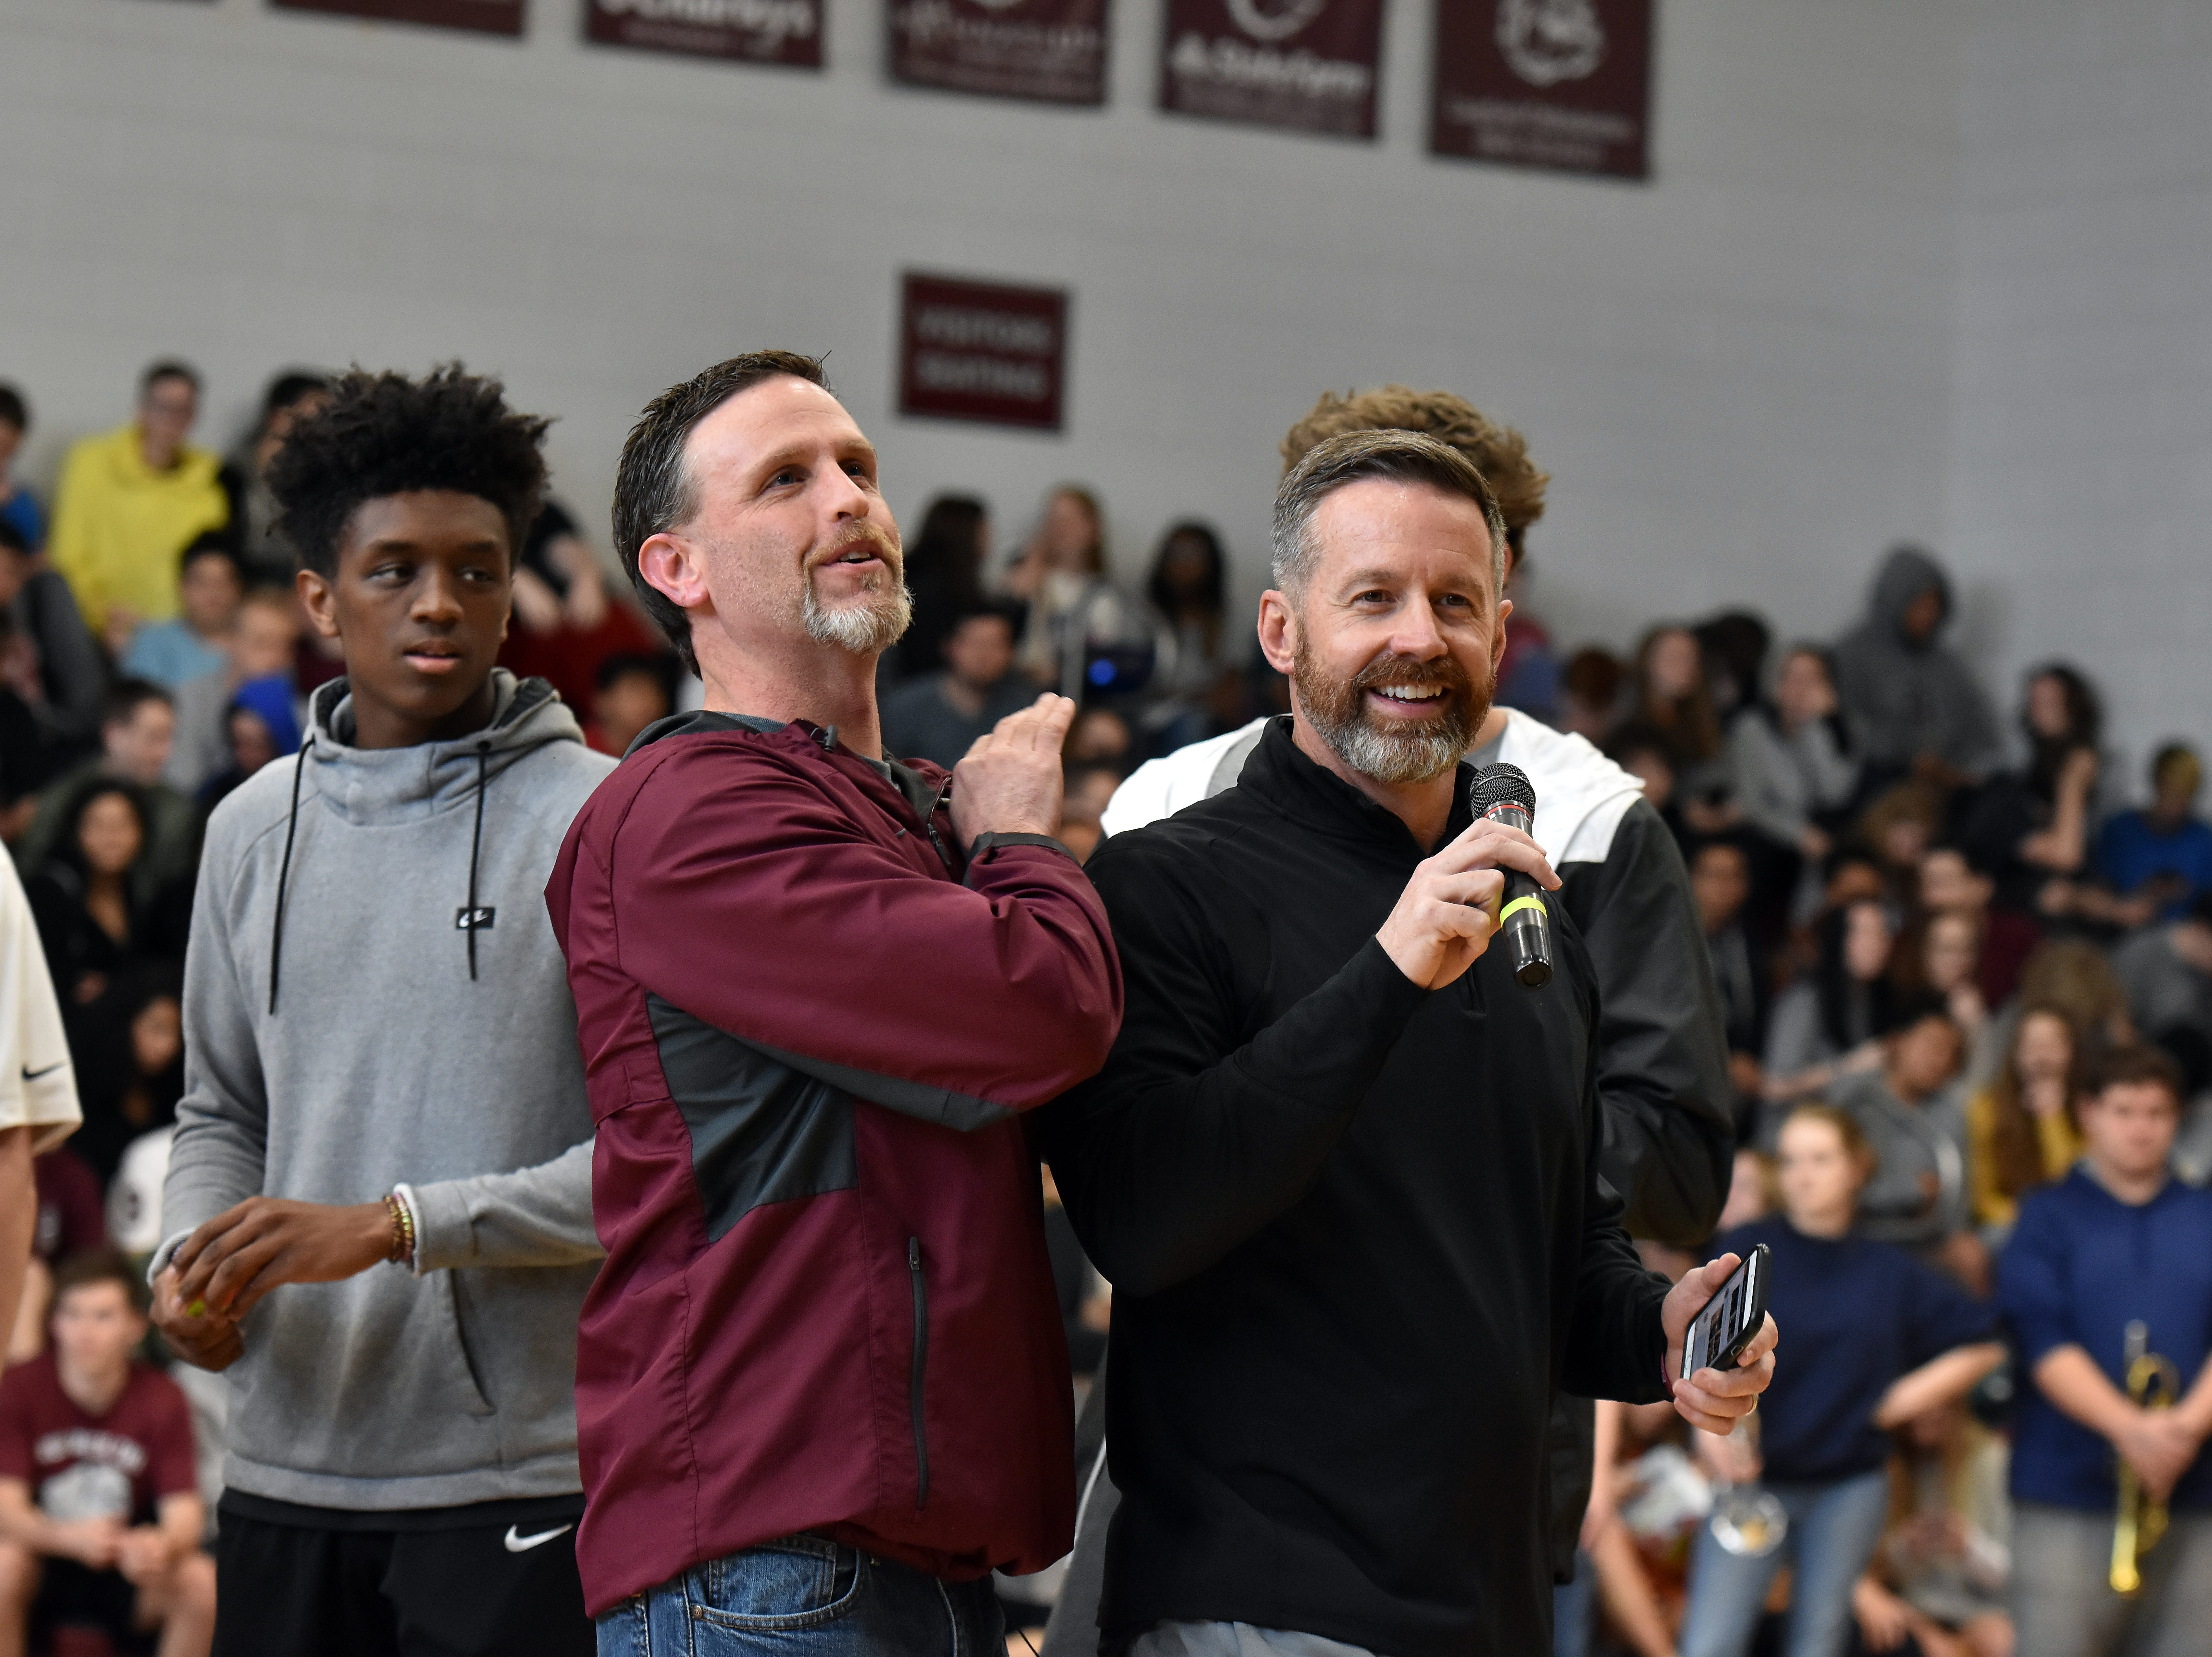 Bearden athletic director Donald Balcom congratulates basketball coach Jeremy Parrott during the pep rally honoring the state championship team on Friday, March 29.